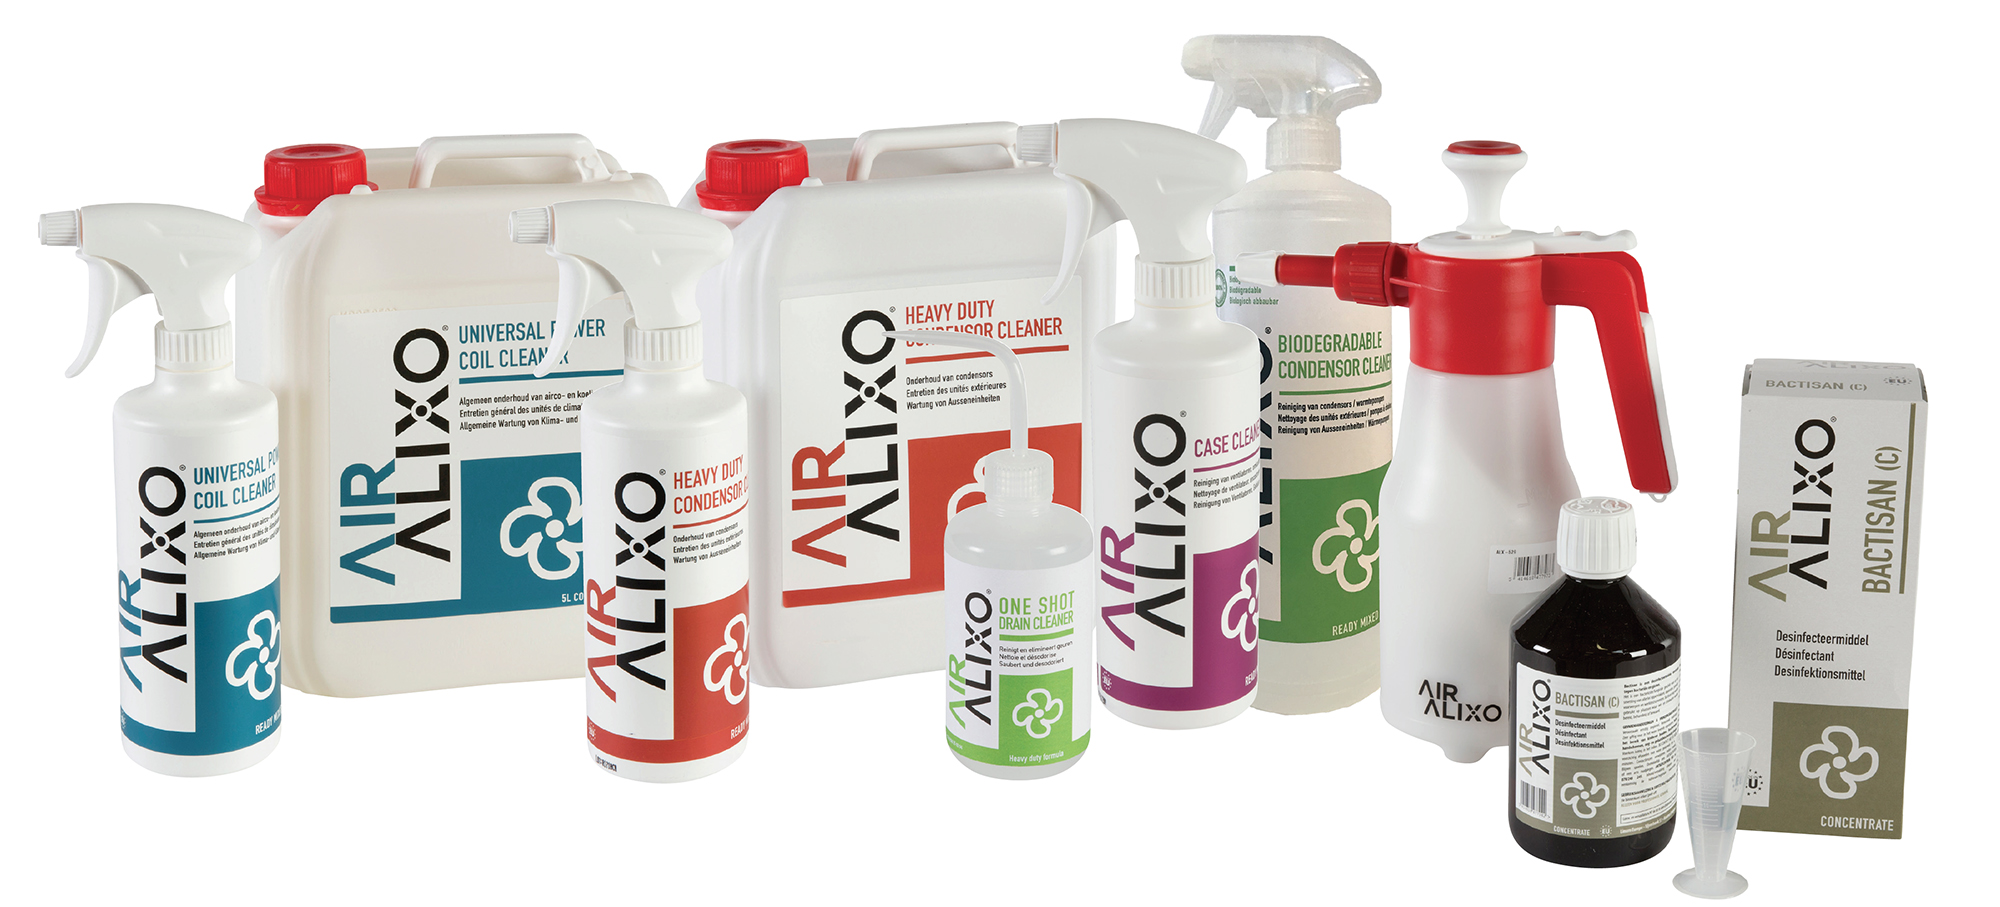 Photo with multiple Air Alixo products